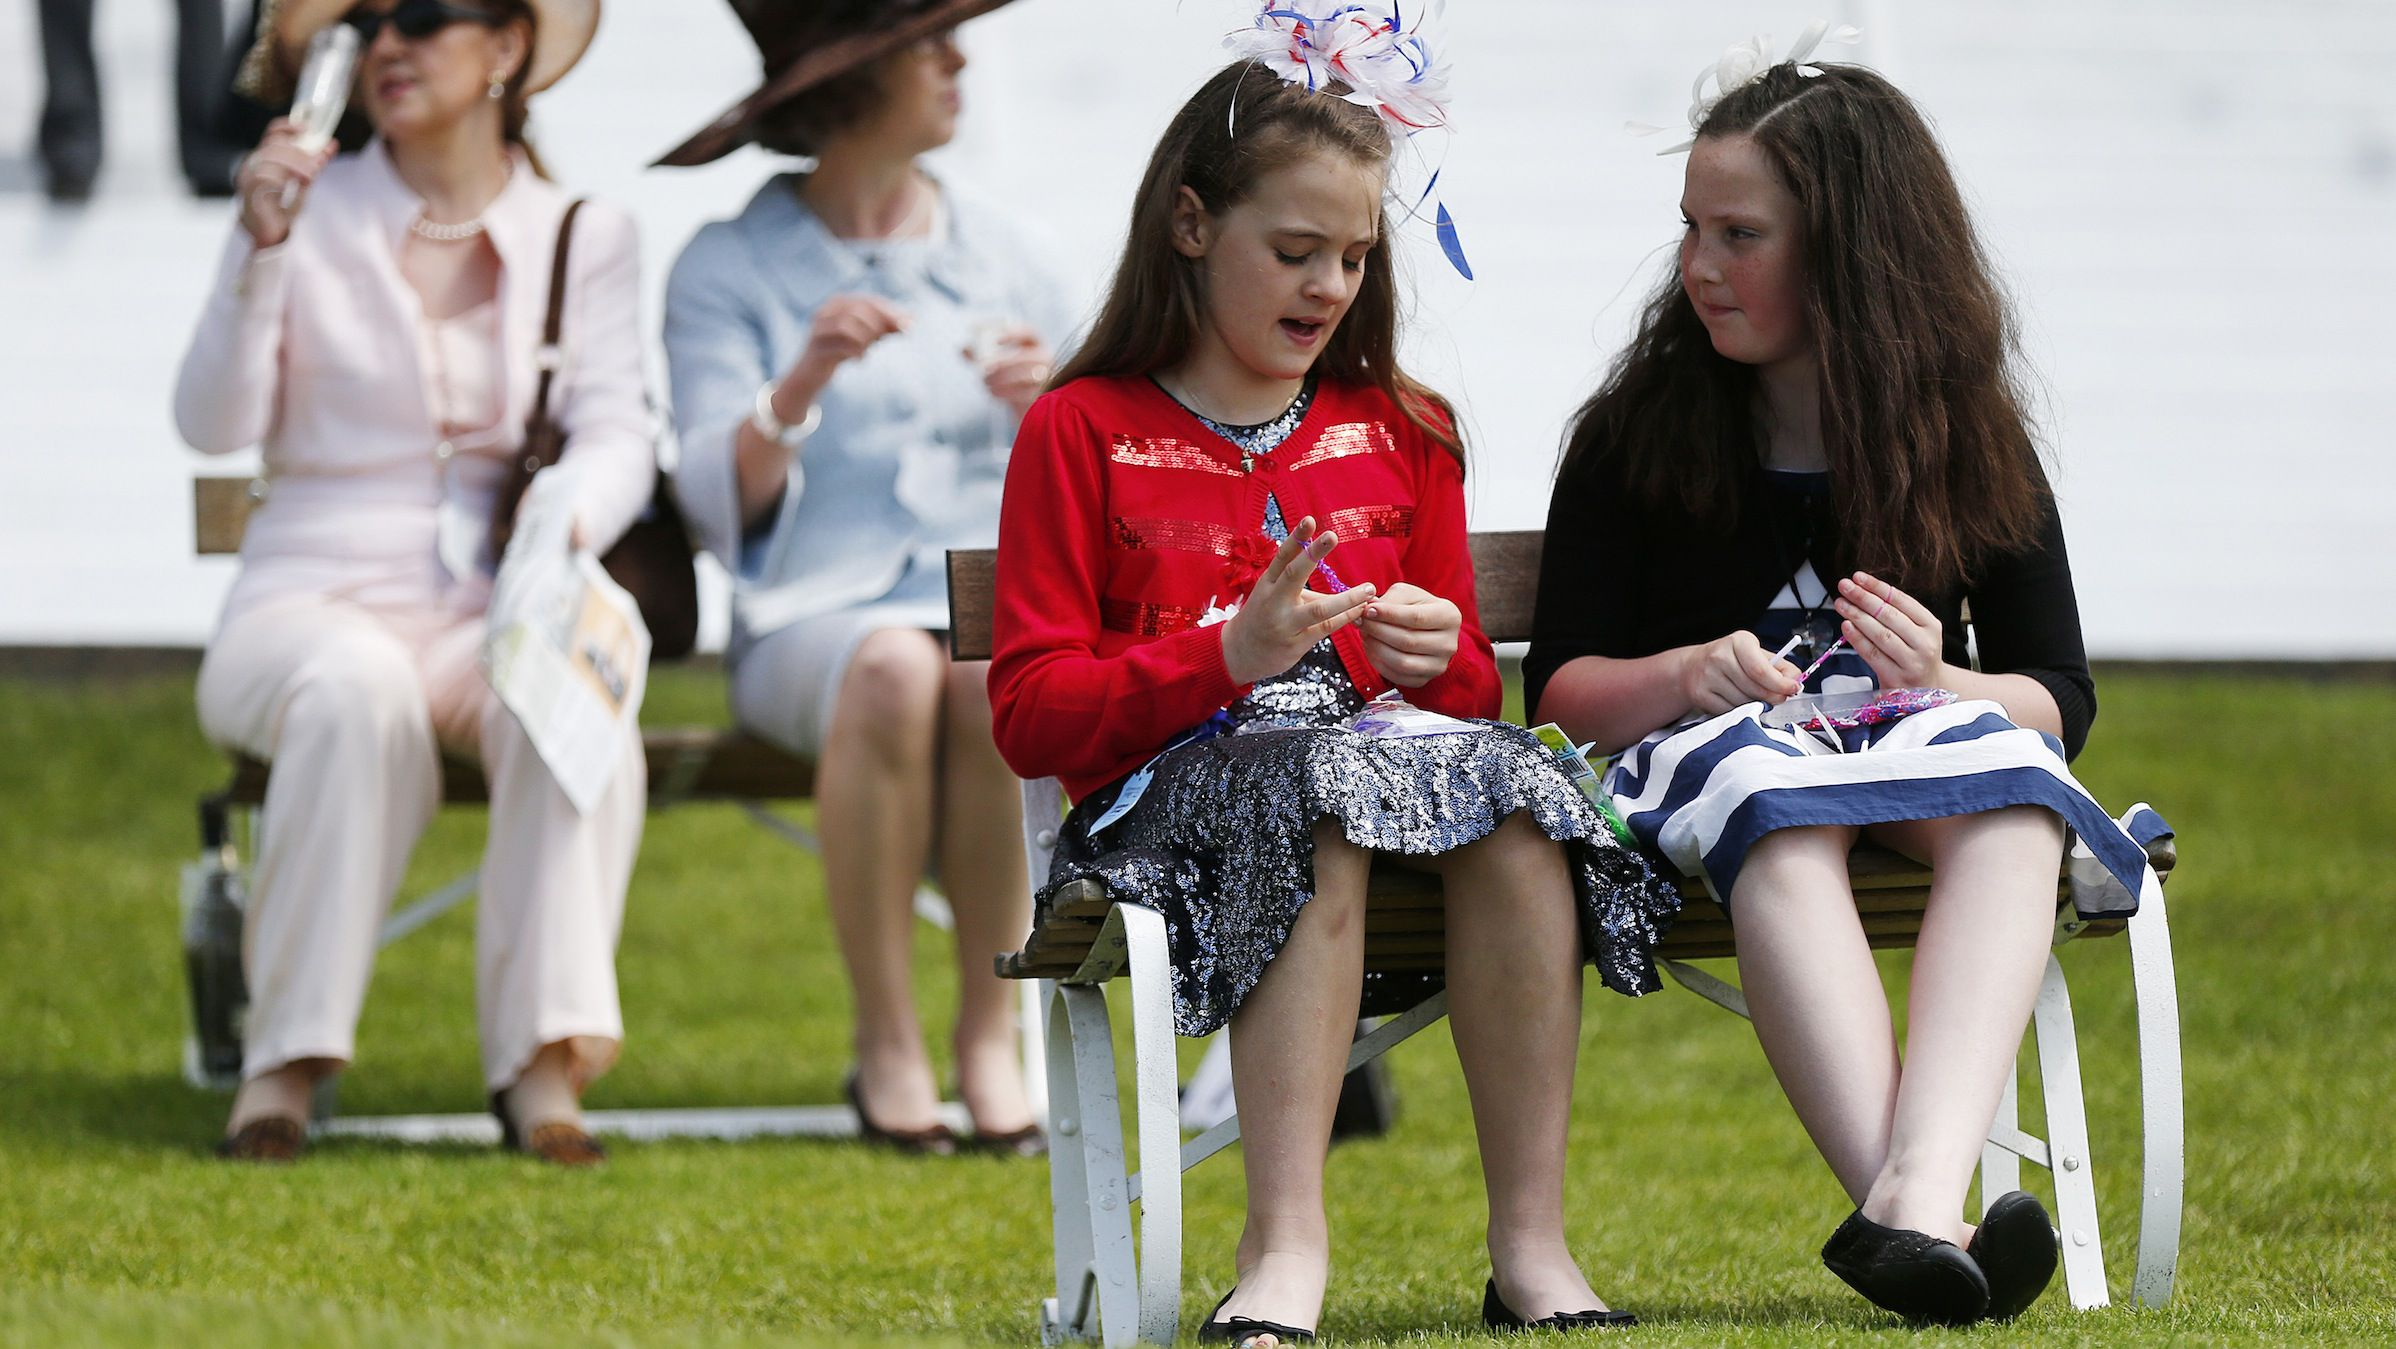 Girls make bracelets while they wait for the start of the first race in the Royal Enclosure at the Epsom Derby Festival in Epsom, southern England June 7, 2014.